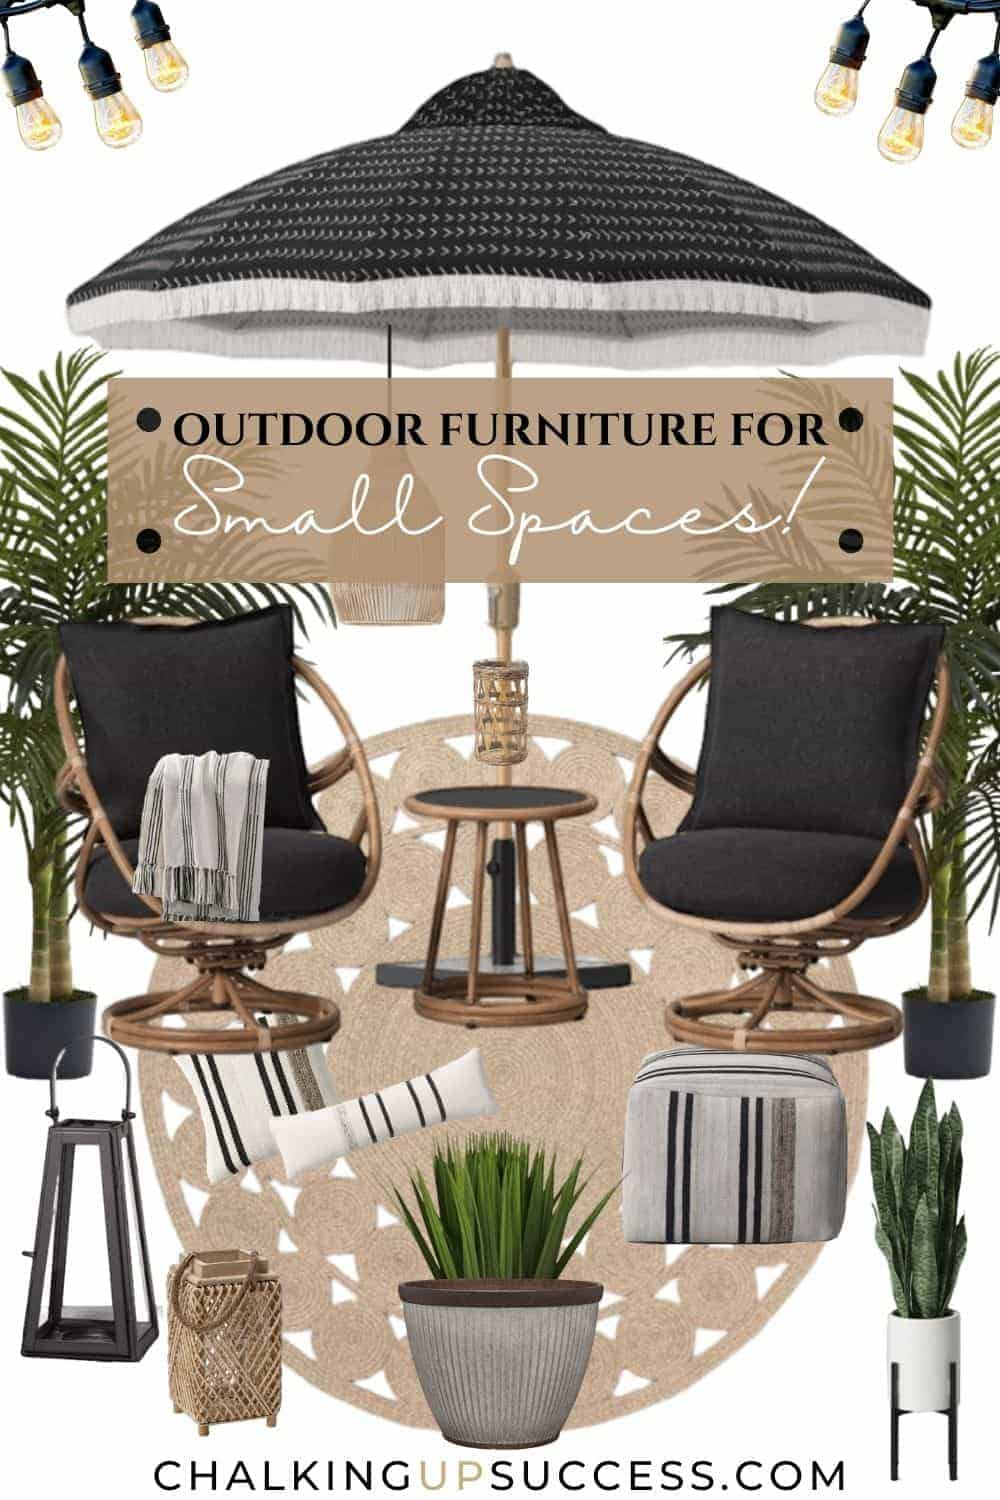 This outdoor furniture for small spaces includes a set of two rocking chairs and a side table. There is a beige coloured jute rug and a black sun umbrella with a fringed edge. Plants and lanterns complete this design.